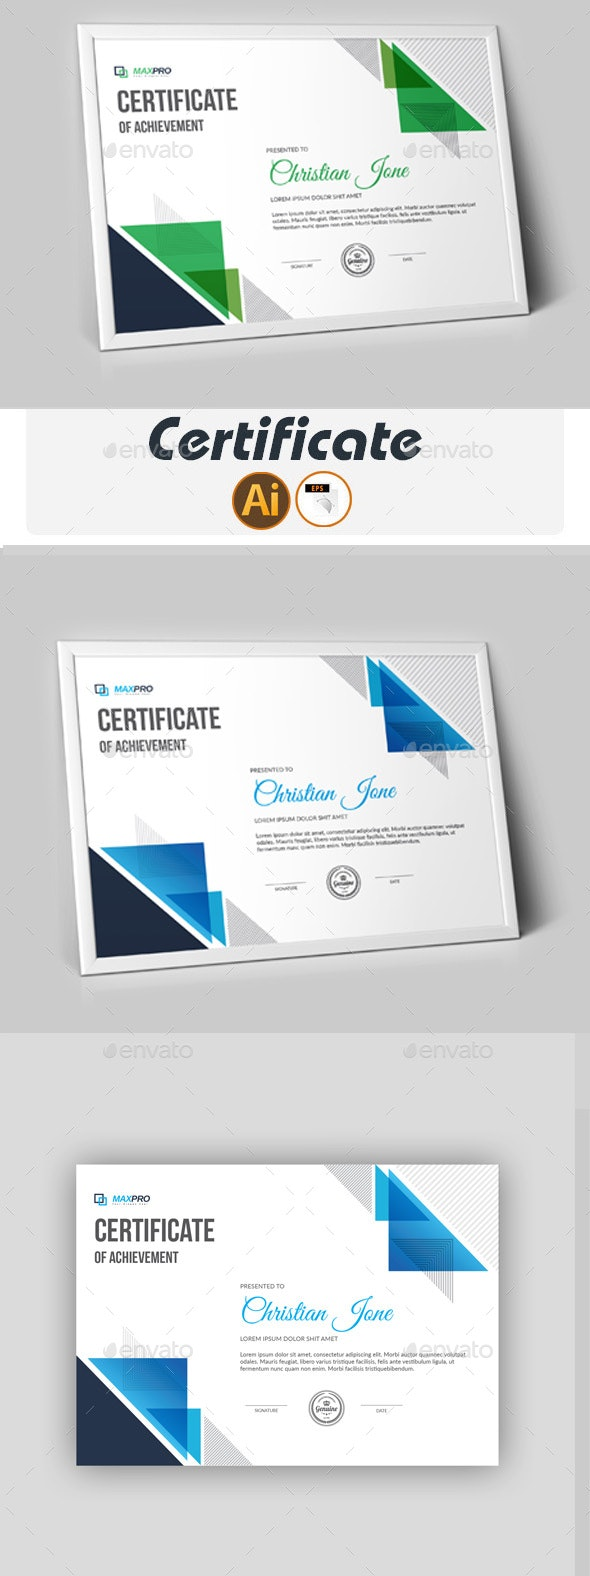 Certificate - Print Templates